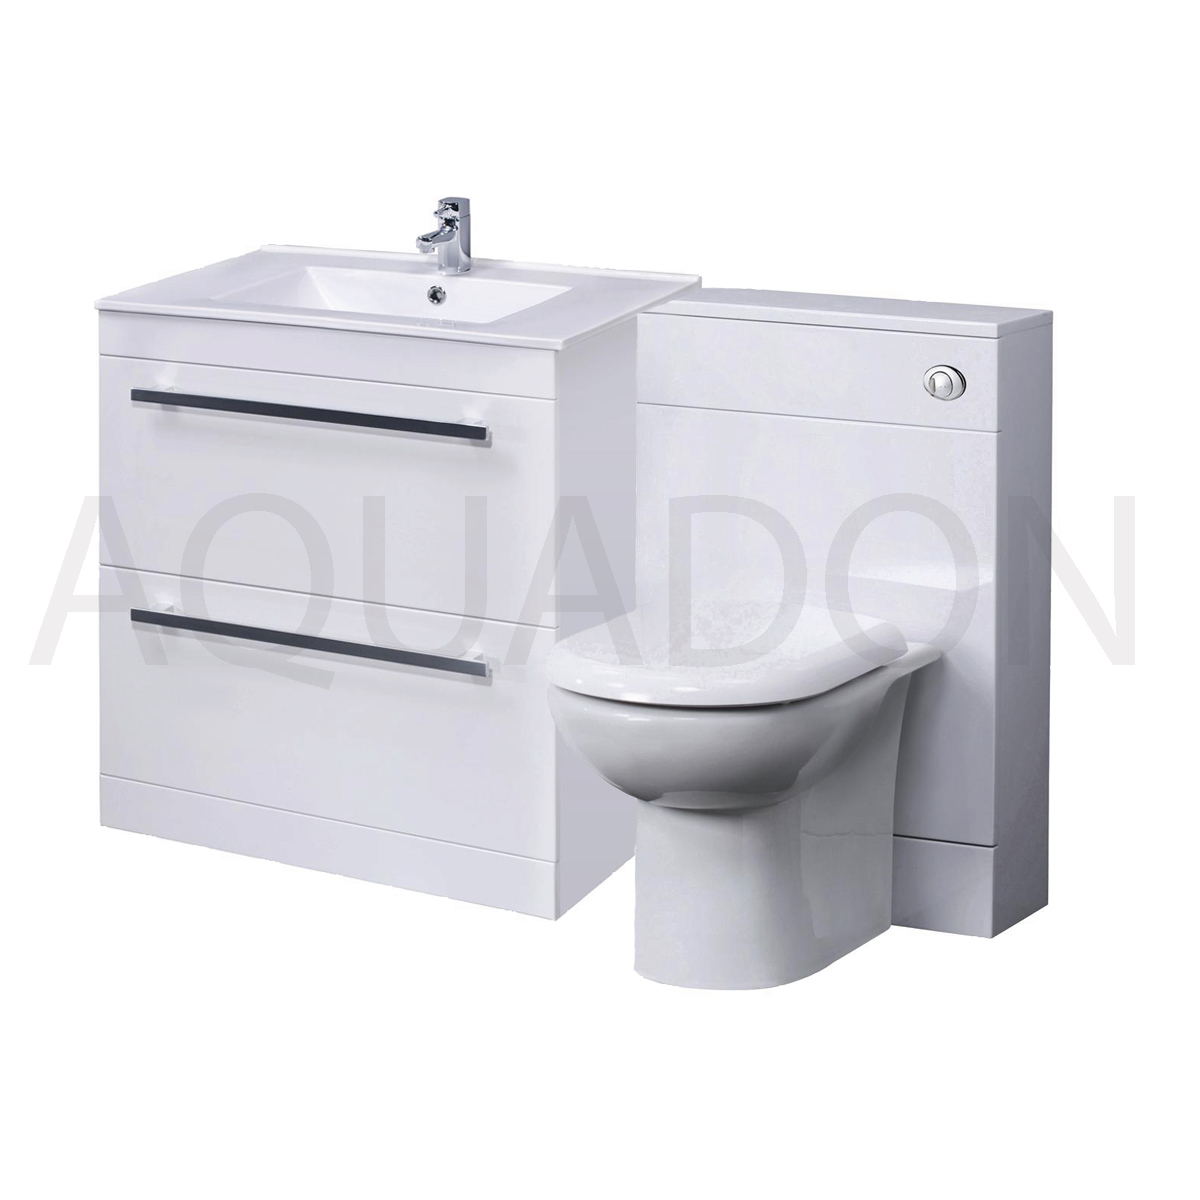 Vanity Unit Btw Linton Toilet Wc Pan Minimalist Basin Drawer Tap Opt 1100mm Ebay